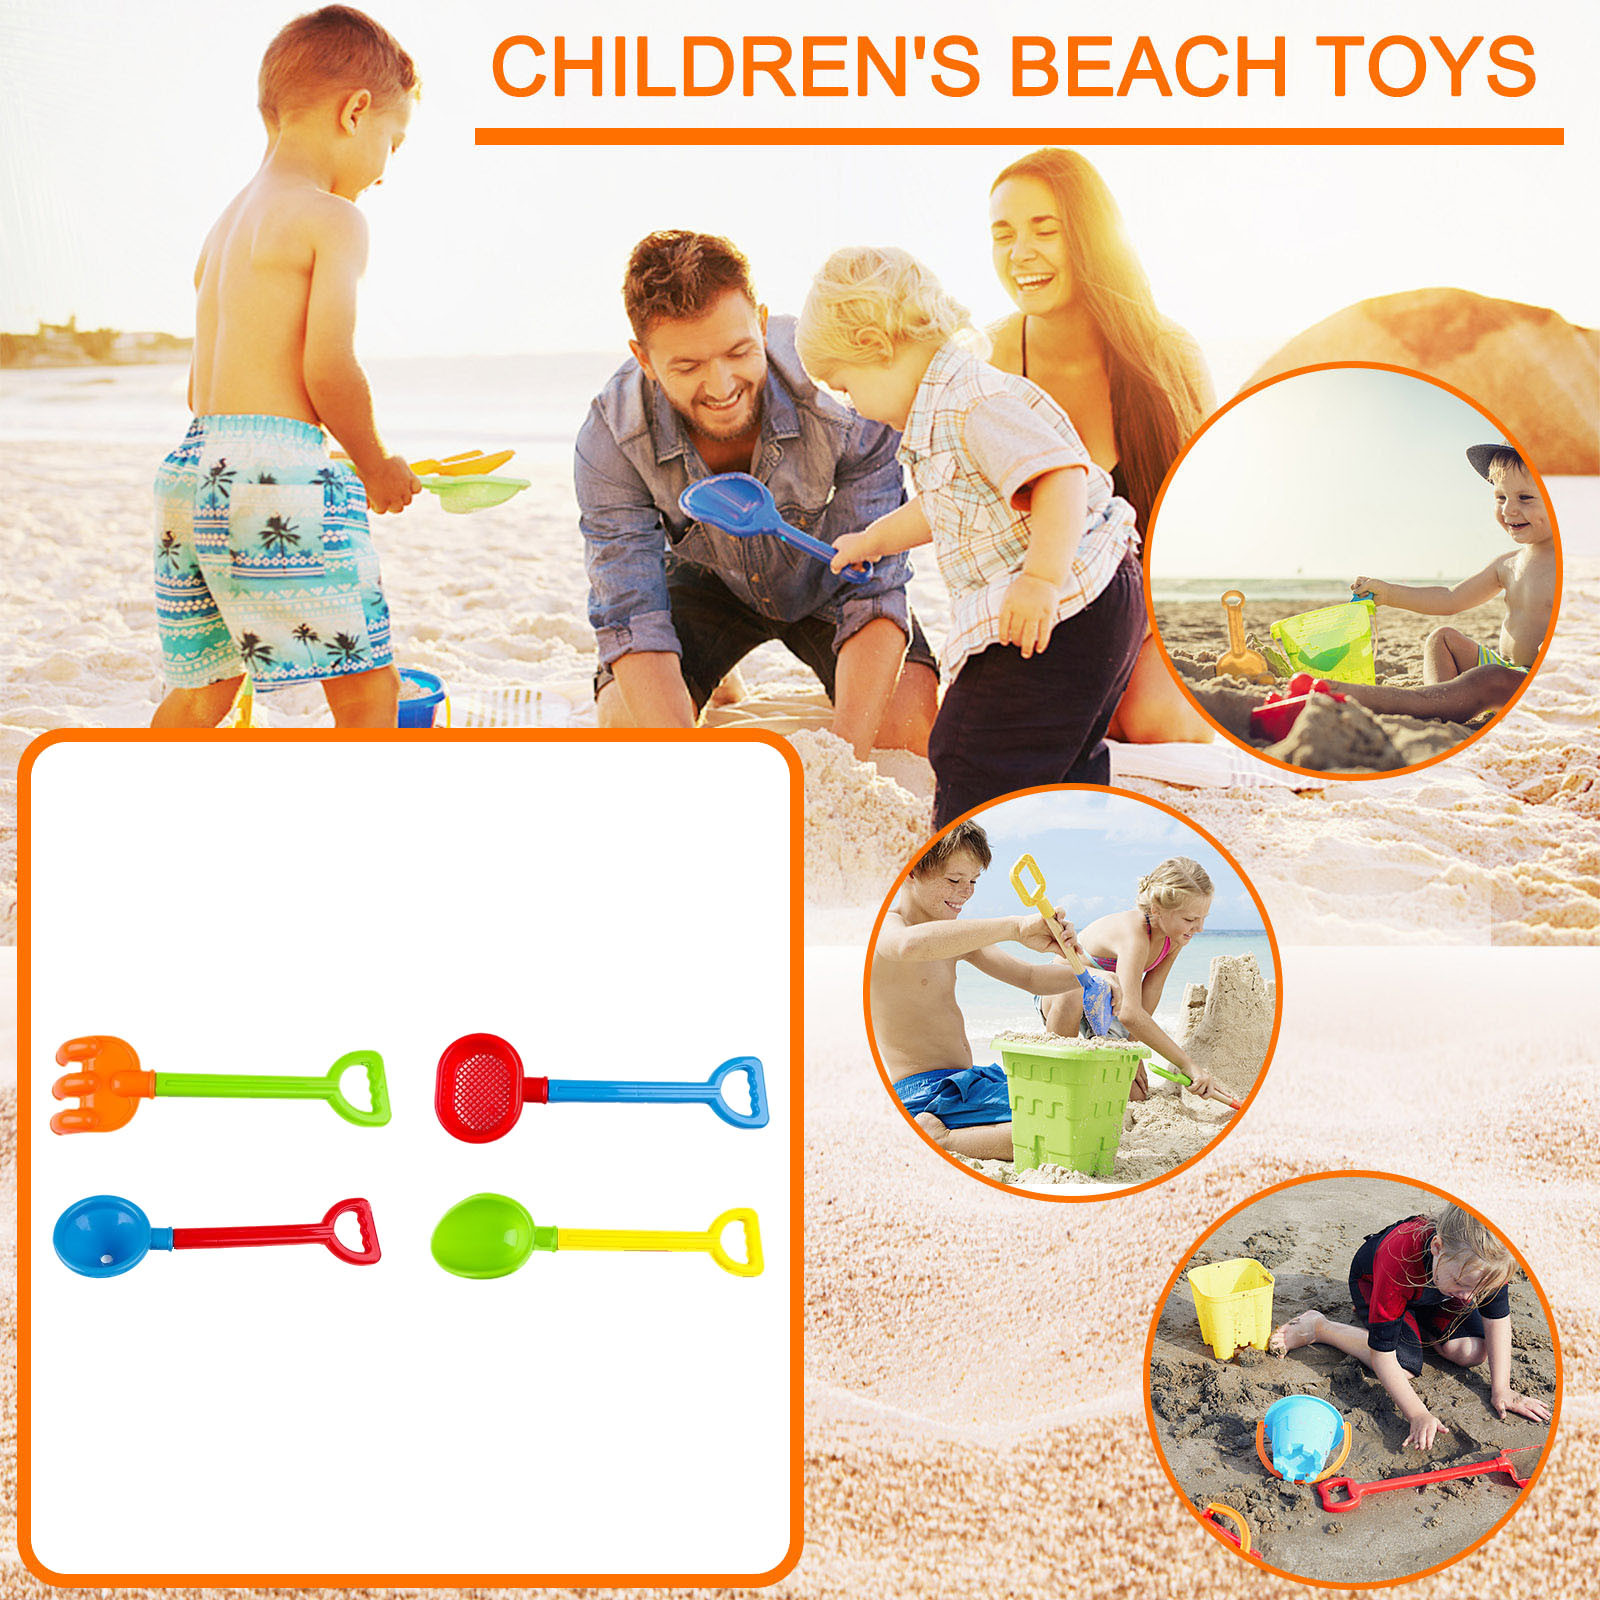 4 Piece Beach Toy Sand Set Sand Play Sandpit Toy Summer Outdoor Toy For Kids Beach Play Sand Water Game